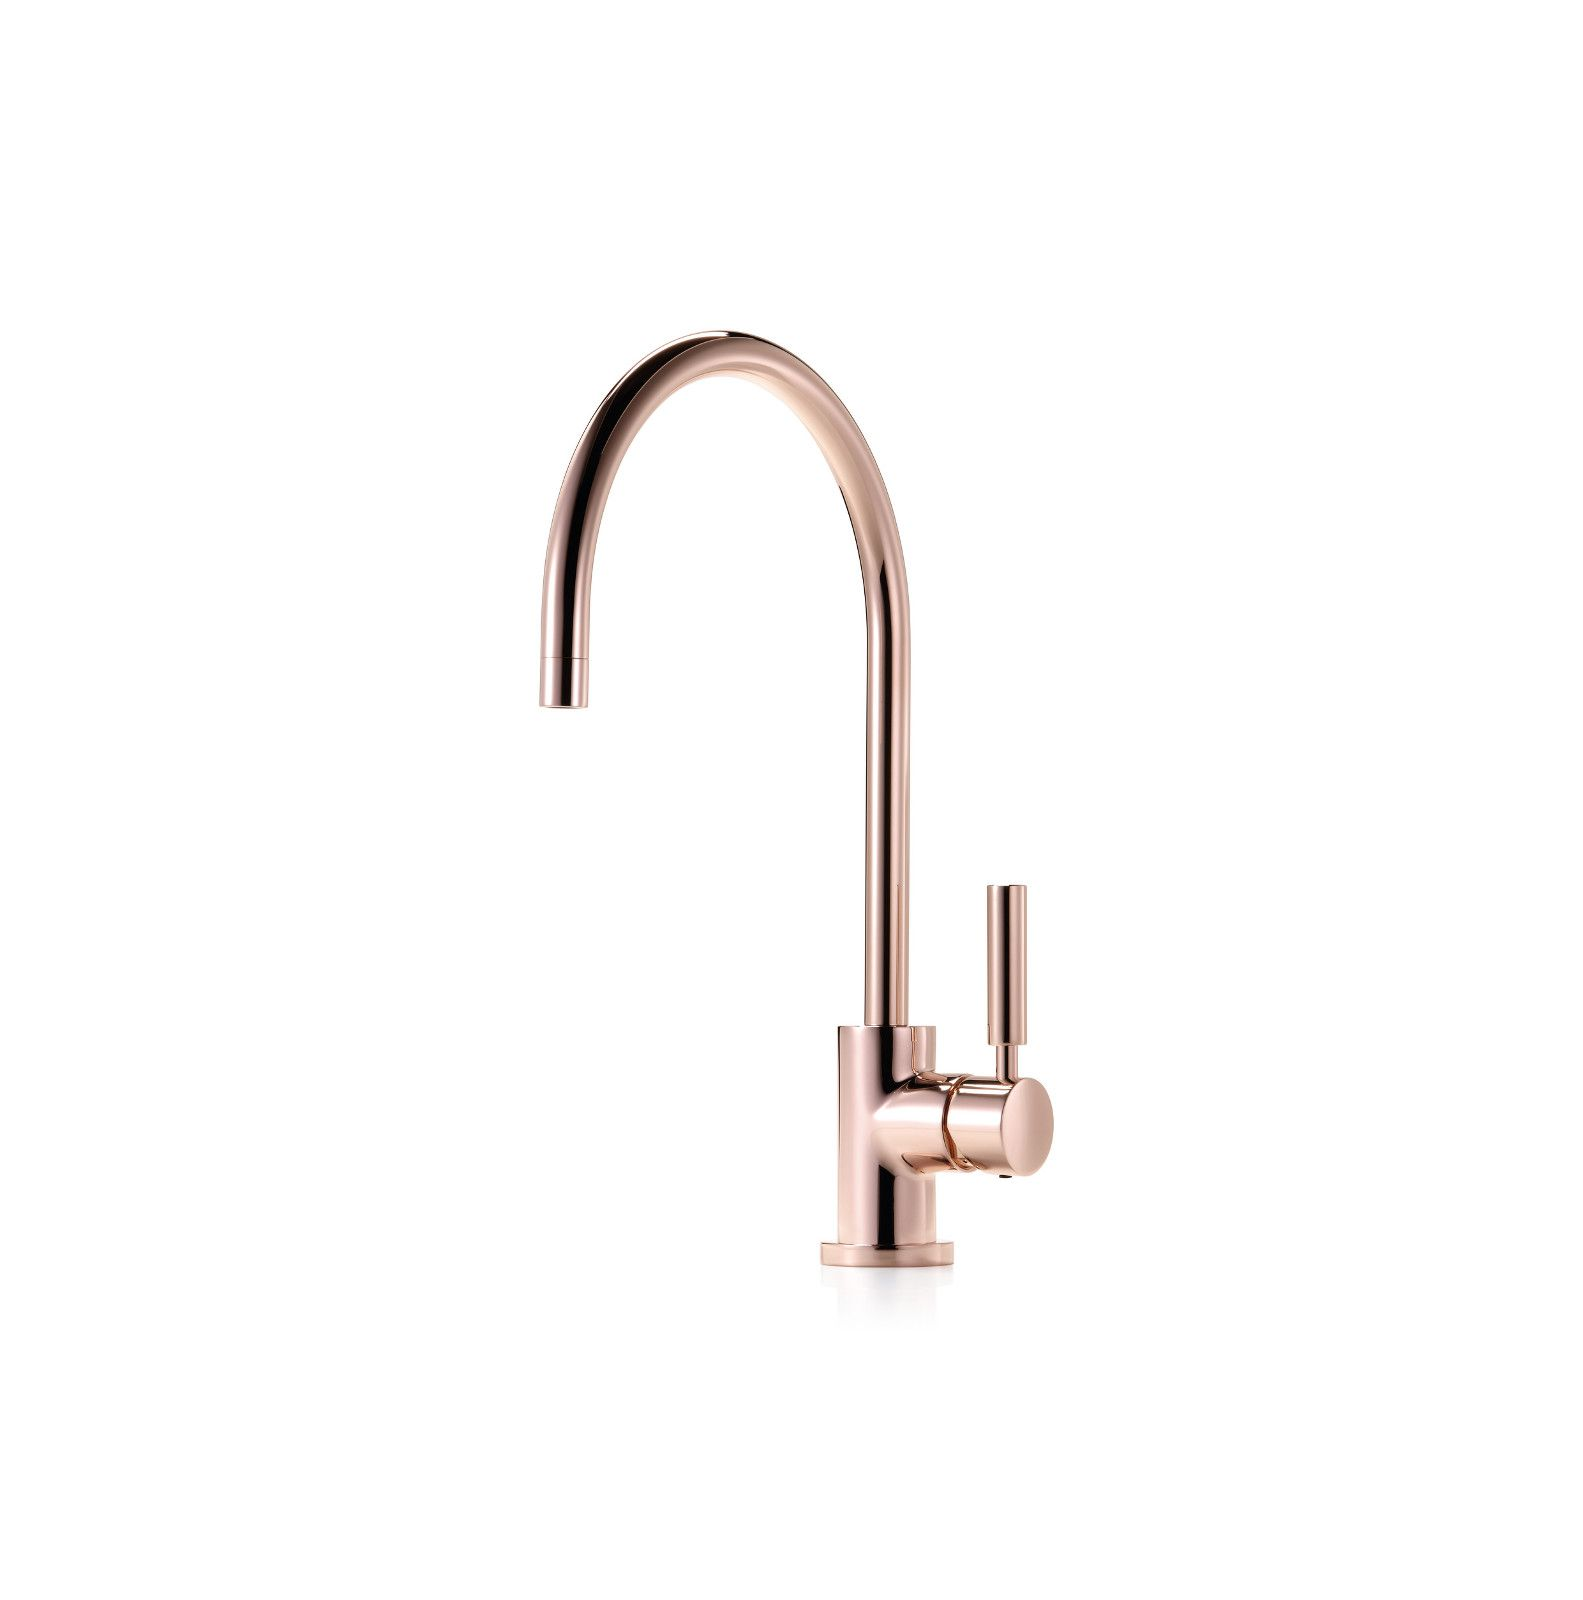 Wasserhahn Gold Küche Cyprum Kitchen Armatur Dornbracht Beauty Pinterest